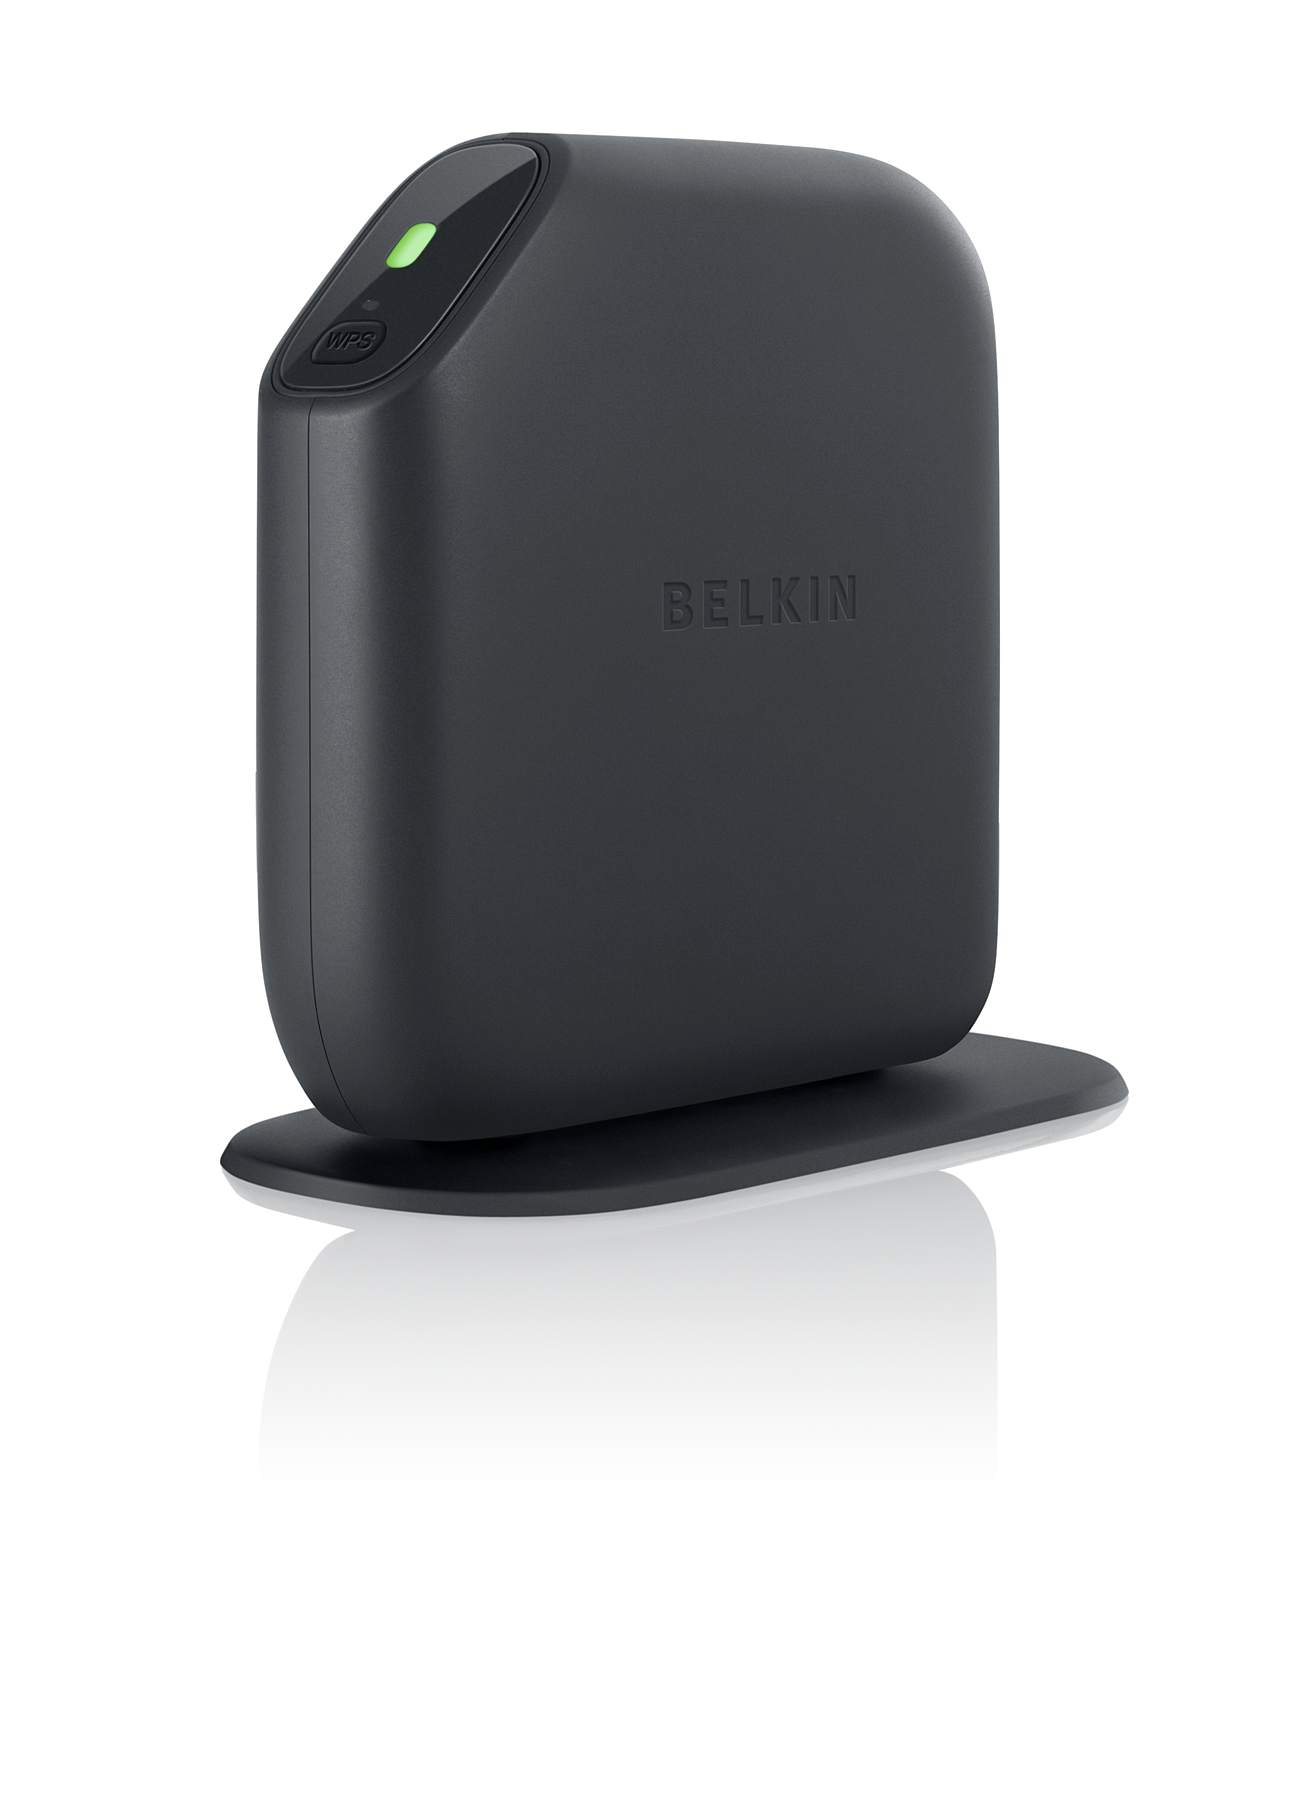 belkin paper Paper back paper photo paper presentation paper professional imaging media scrapbook & craft paper see all paper for work back for work printers back belkin gold series usb 20 cable, 6ft our price: $1999 learn more belkin usb 20 cable, 10ft our price: $2499 learn more.